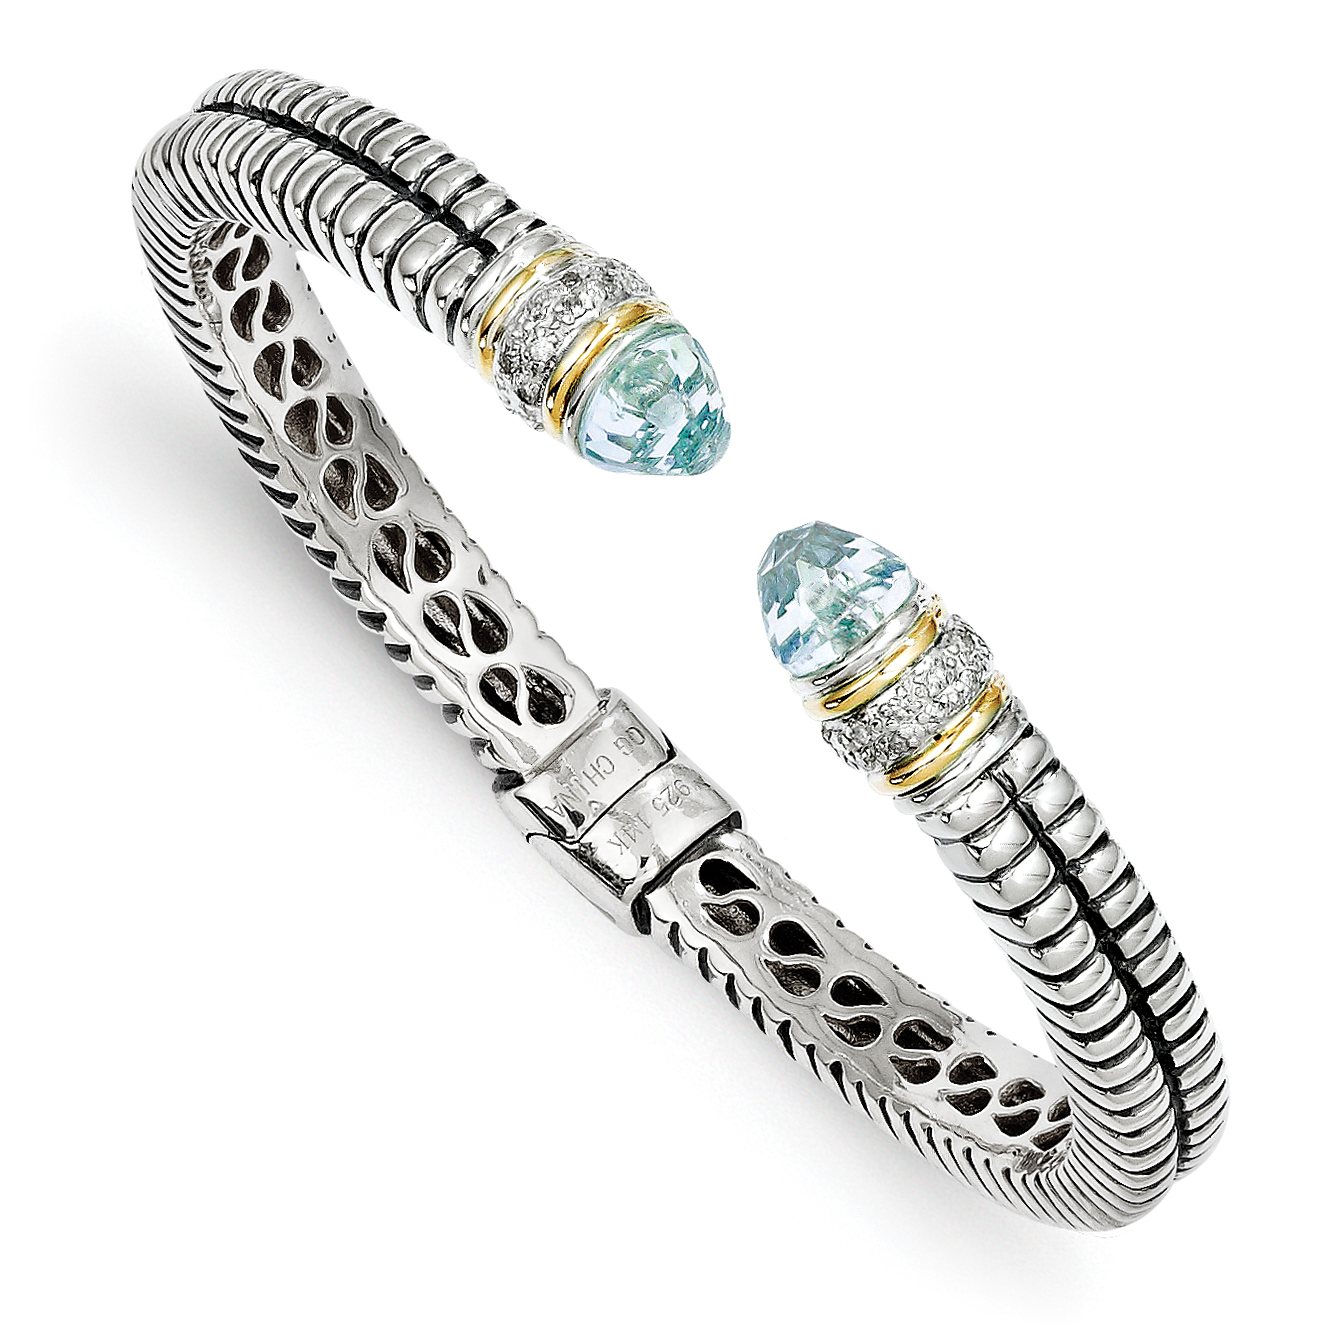 Sterling Silver Two Tone Silver And Gold Plated Sterling Silver w/Sky Blue Topaz & Diamond Cuff Bracelet - image 2 of 2